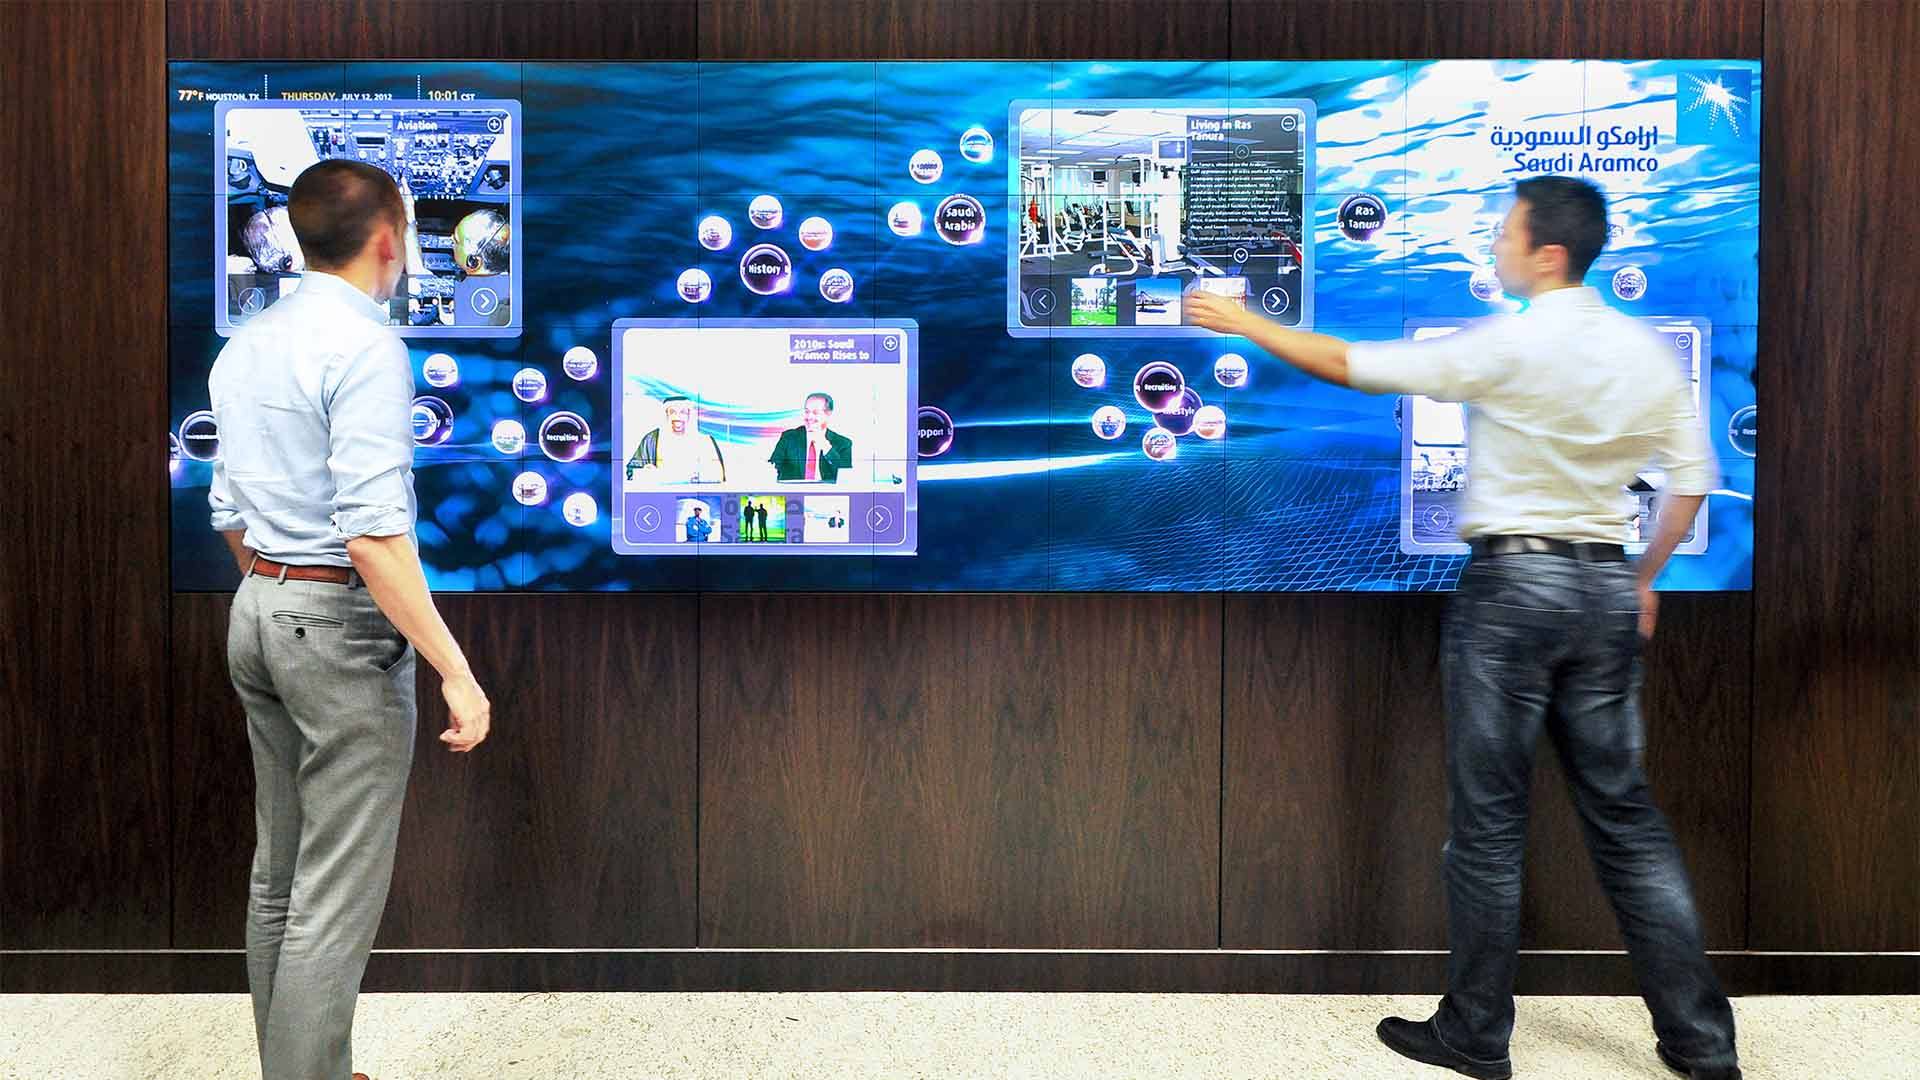 Two men using the interactive media exhibit to display information and utilize its content management system